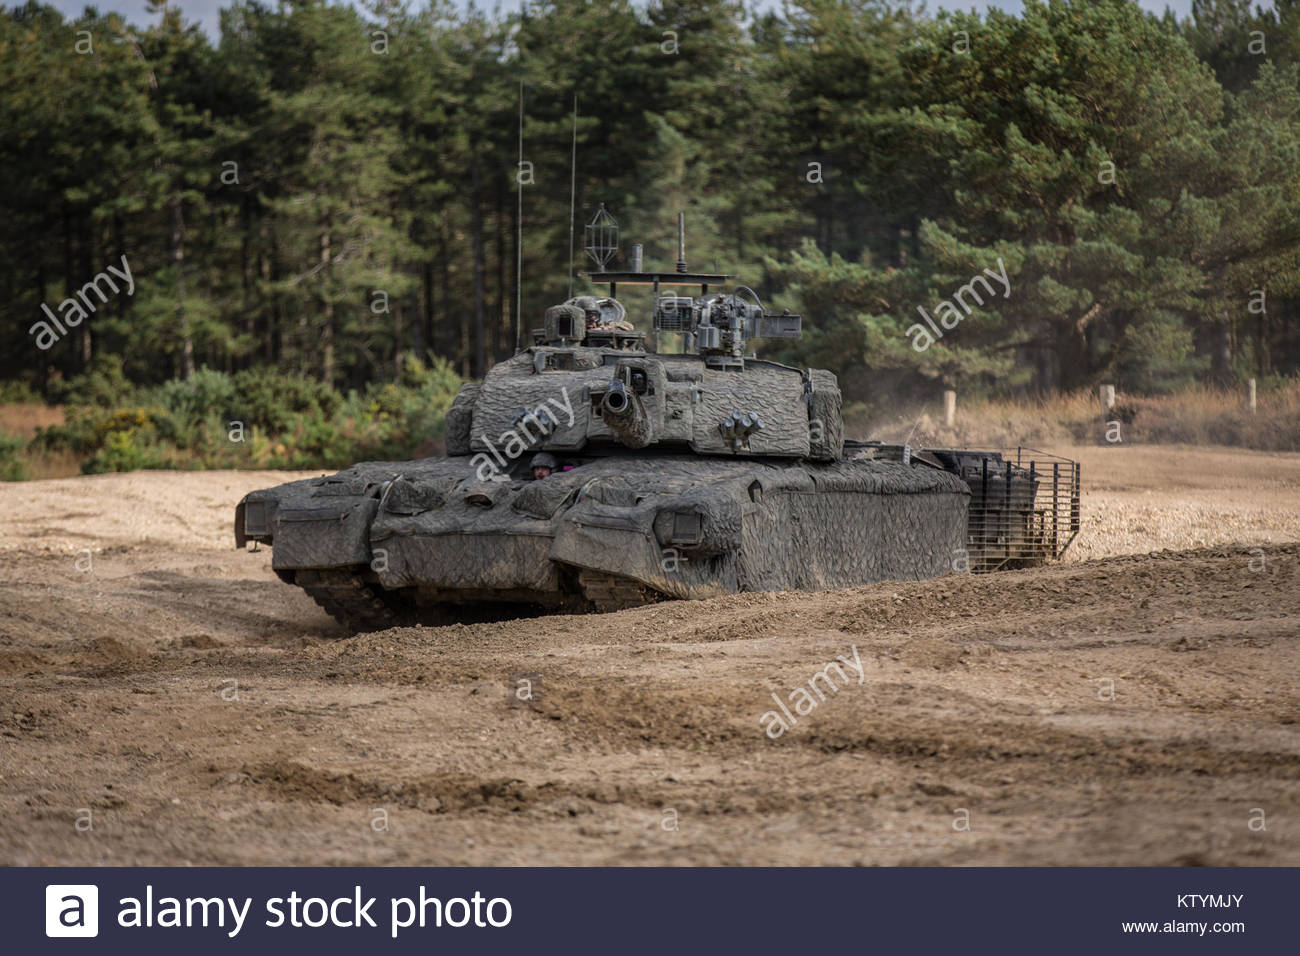 54684733b357 Pictured is the UK Main Battle Tank